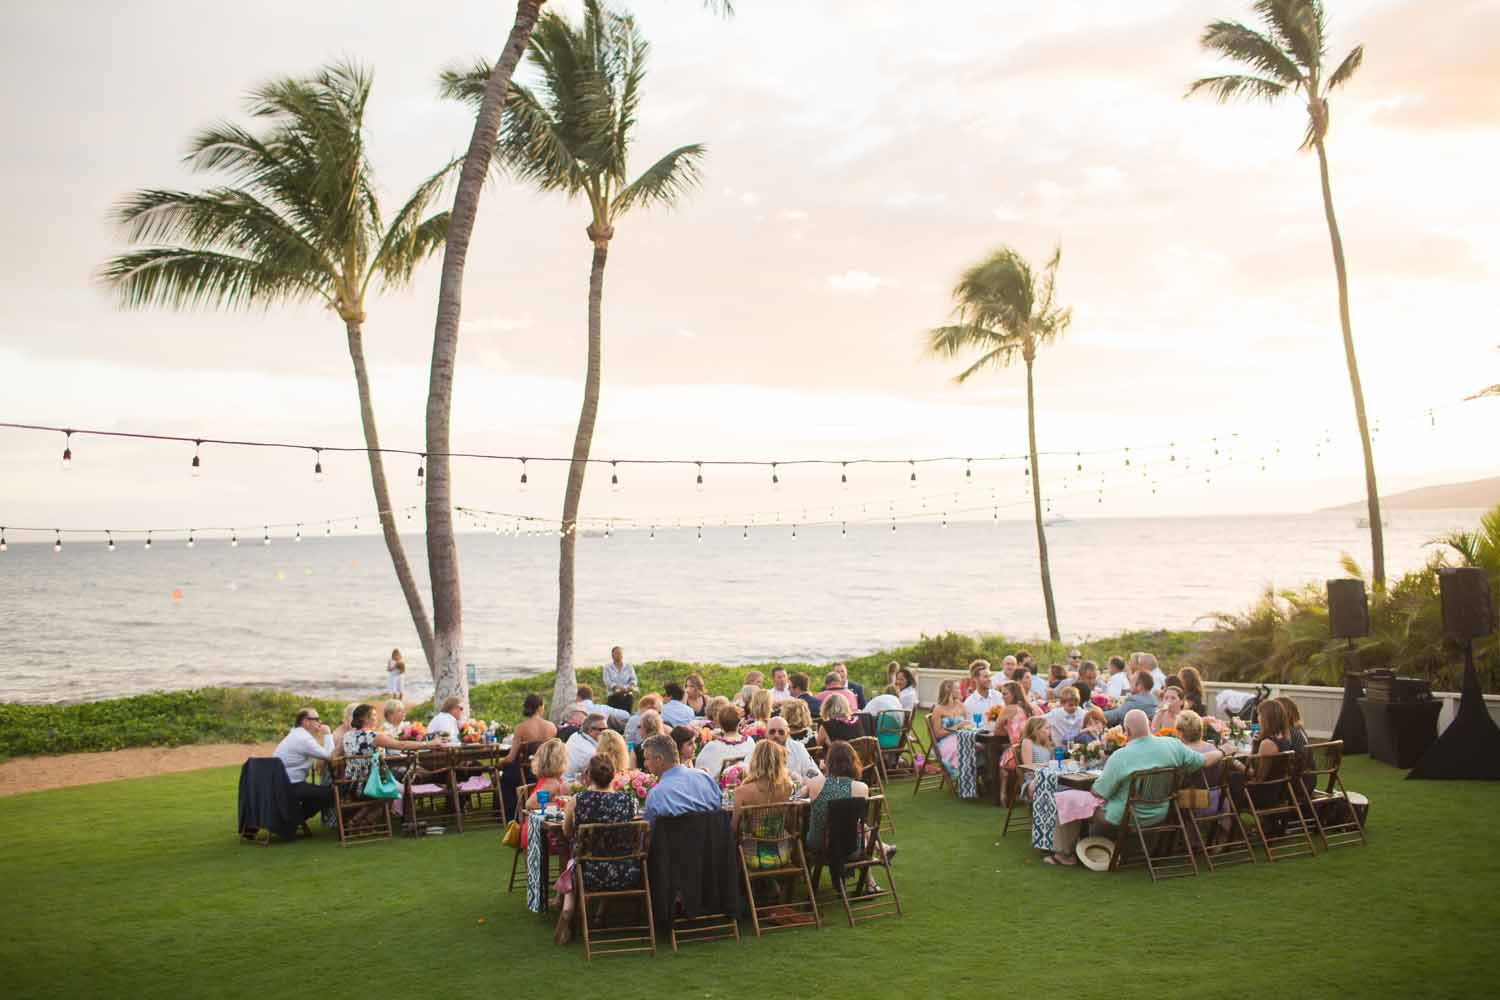 Real Wedding: Tropical, Colorful Maui Wedding Details